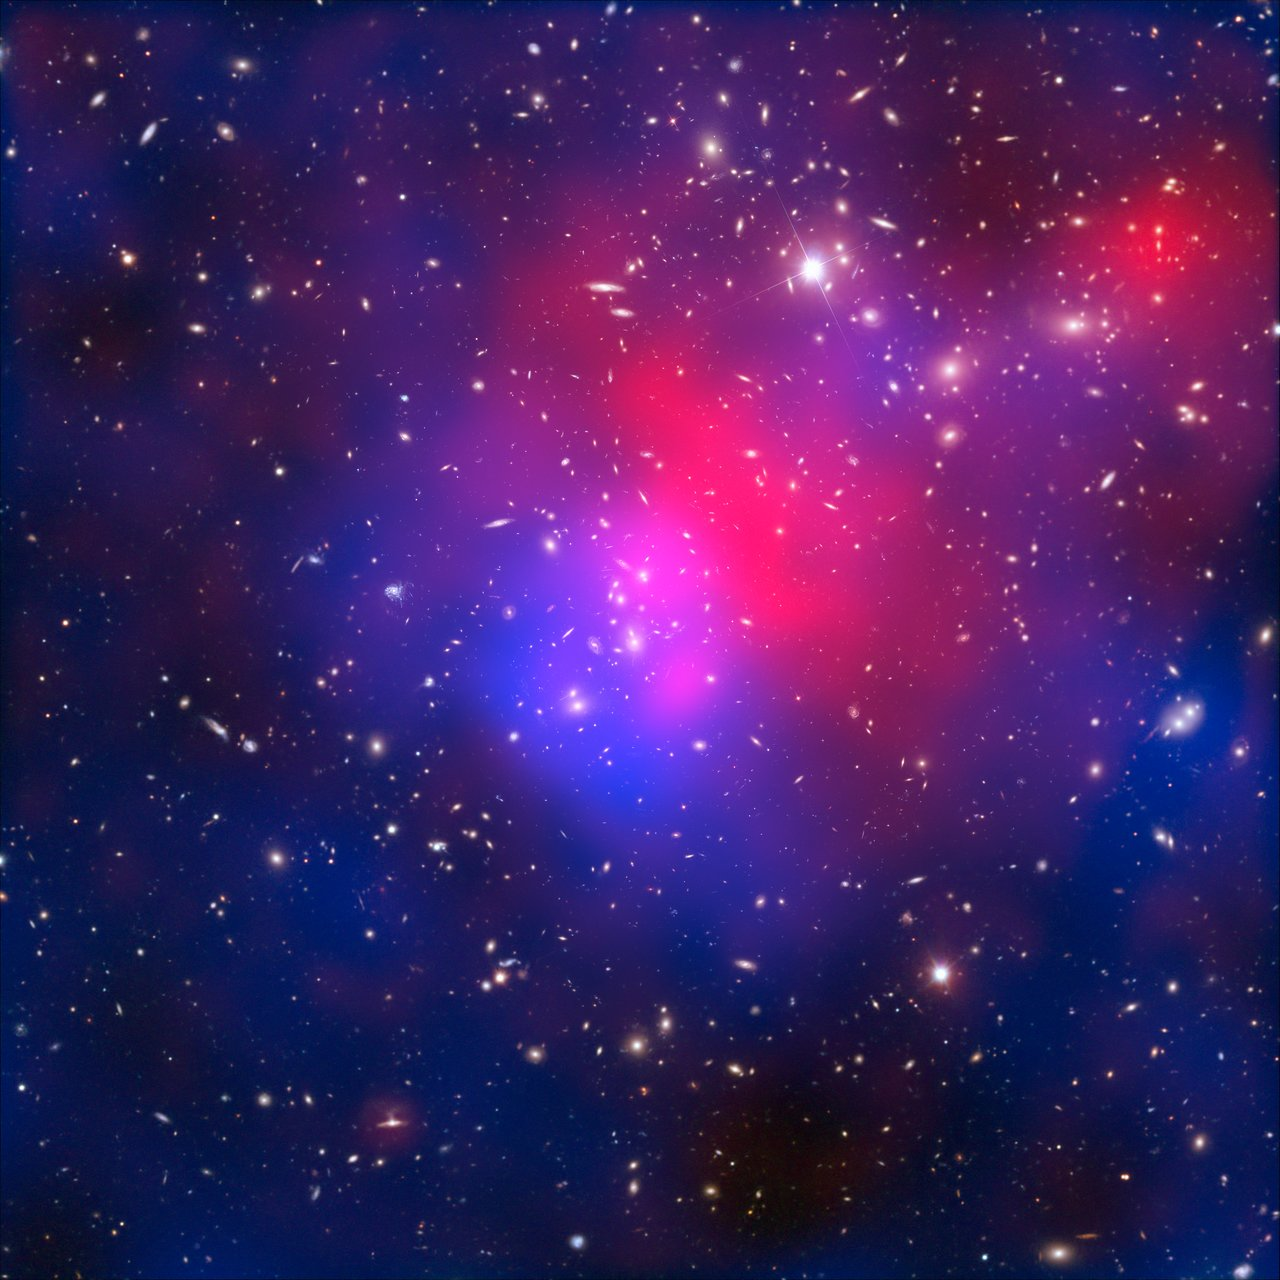 X-rays, dark matter and galaxies in the cluster Abell 2744